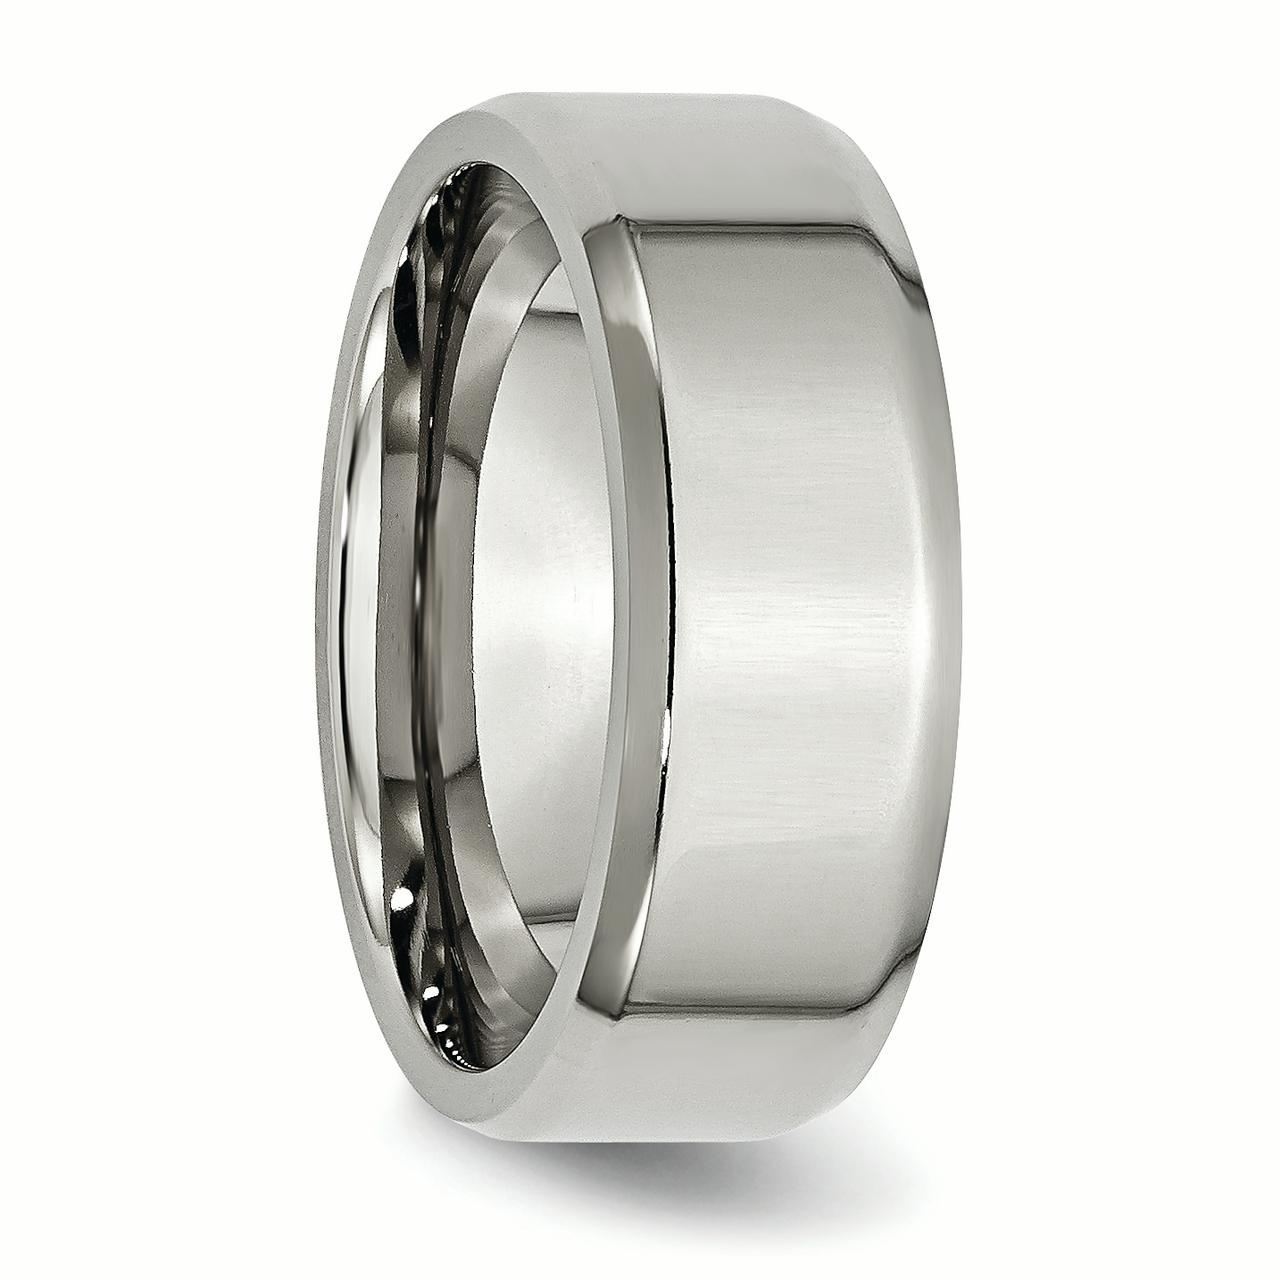 Stainless Steel Beveled Edge 8mm Wedding Ring Band Size 8.00 Classic Flat W/edge Fashion Jewelry Gifts For Women For Her - image 4 of 6